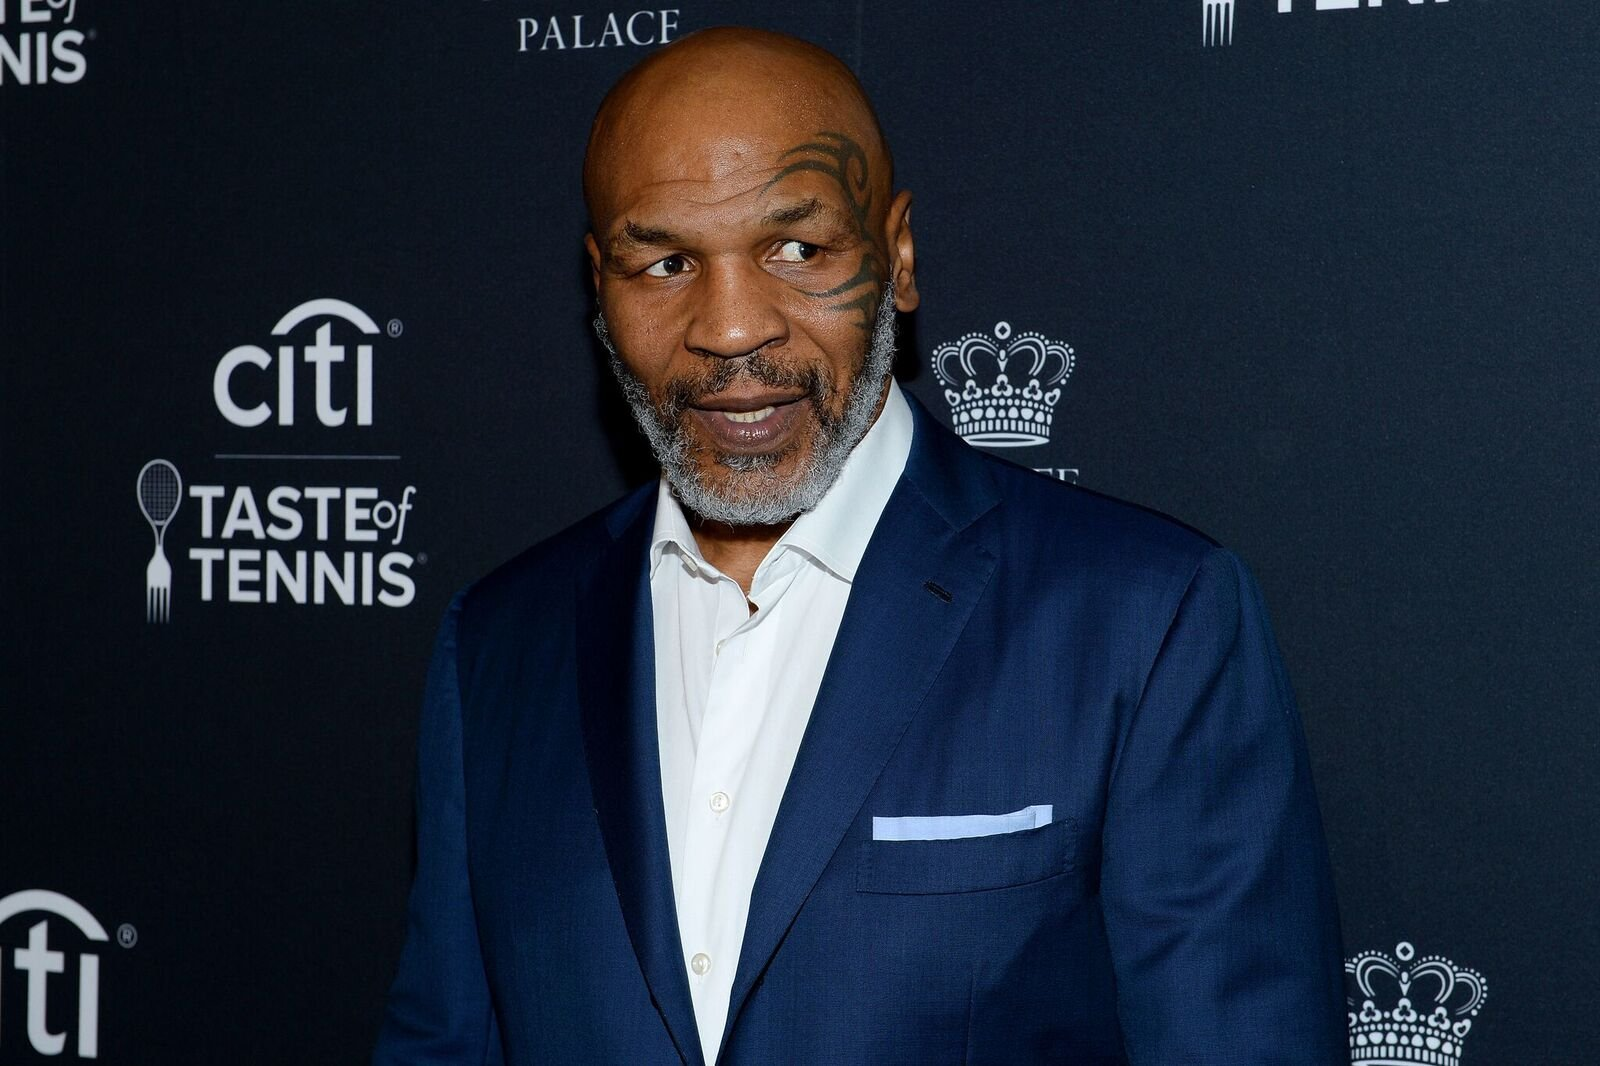 Mike Tyson attends the Citi Taste Of Tennis on August 22, 2019 in New York City. | Source: Getty Images